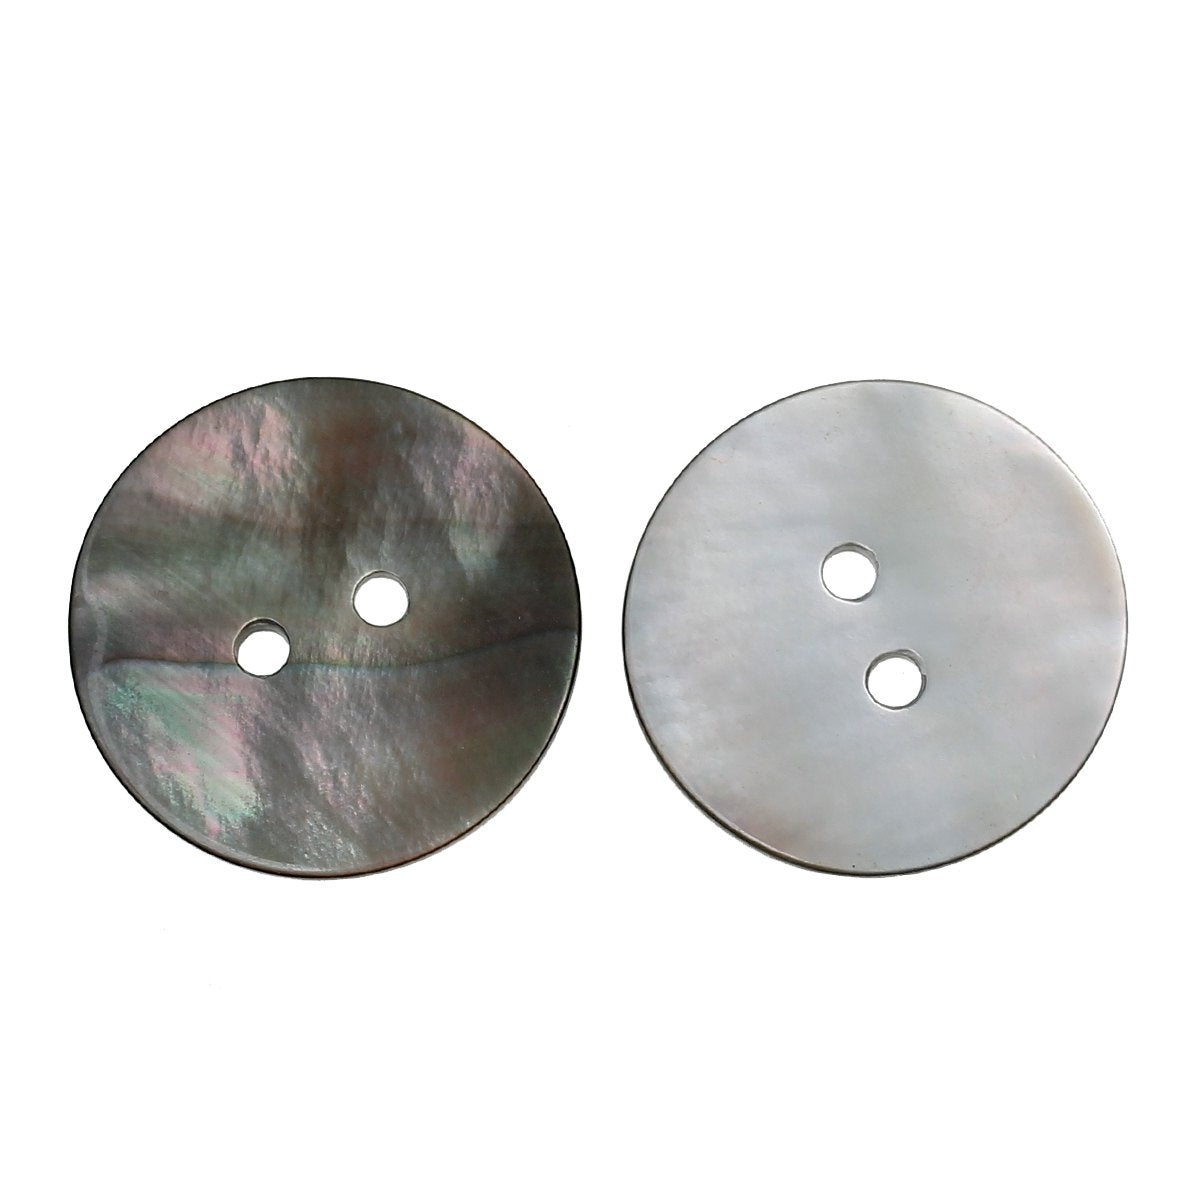 8 Extra Large Shell Buttons - 2 inch - 5cm -  Mother of Pearl Shell Buttons  (27907)